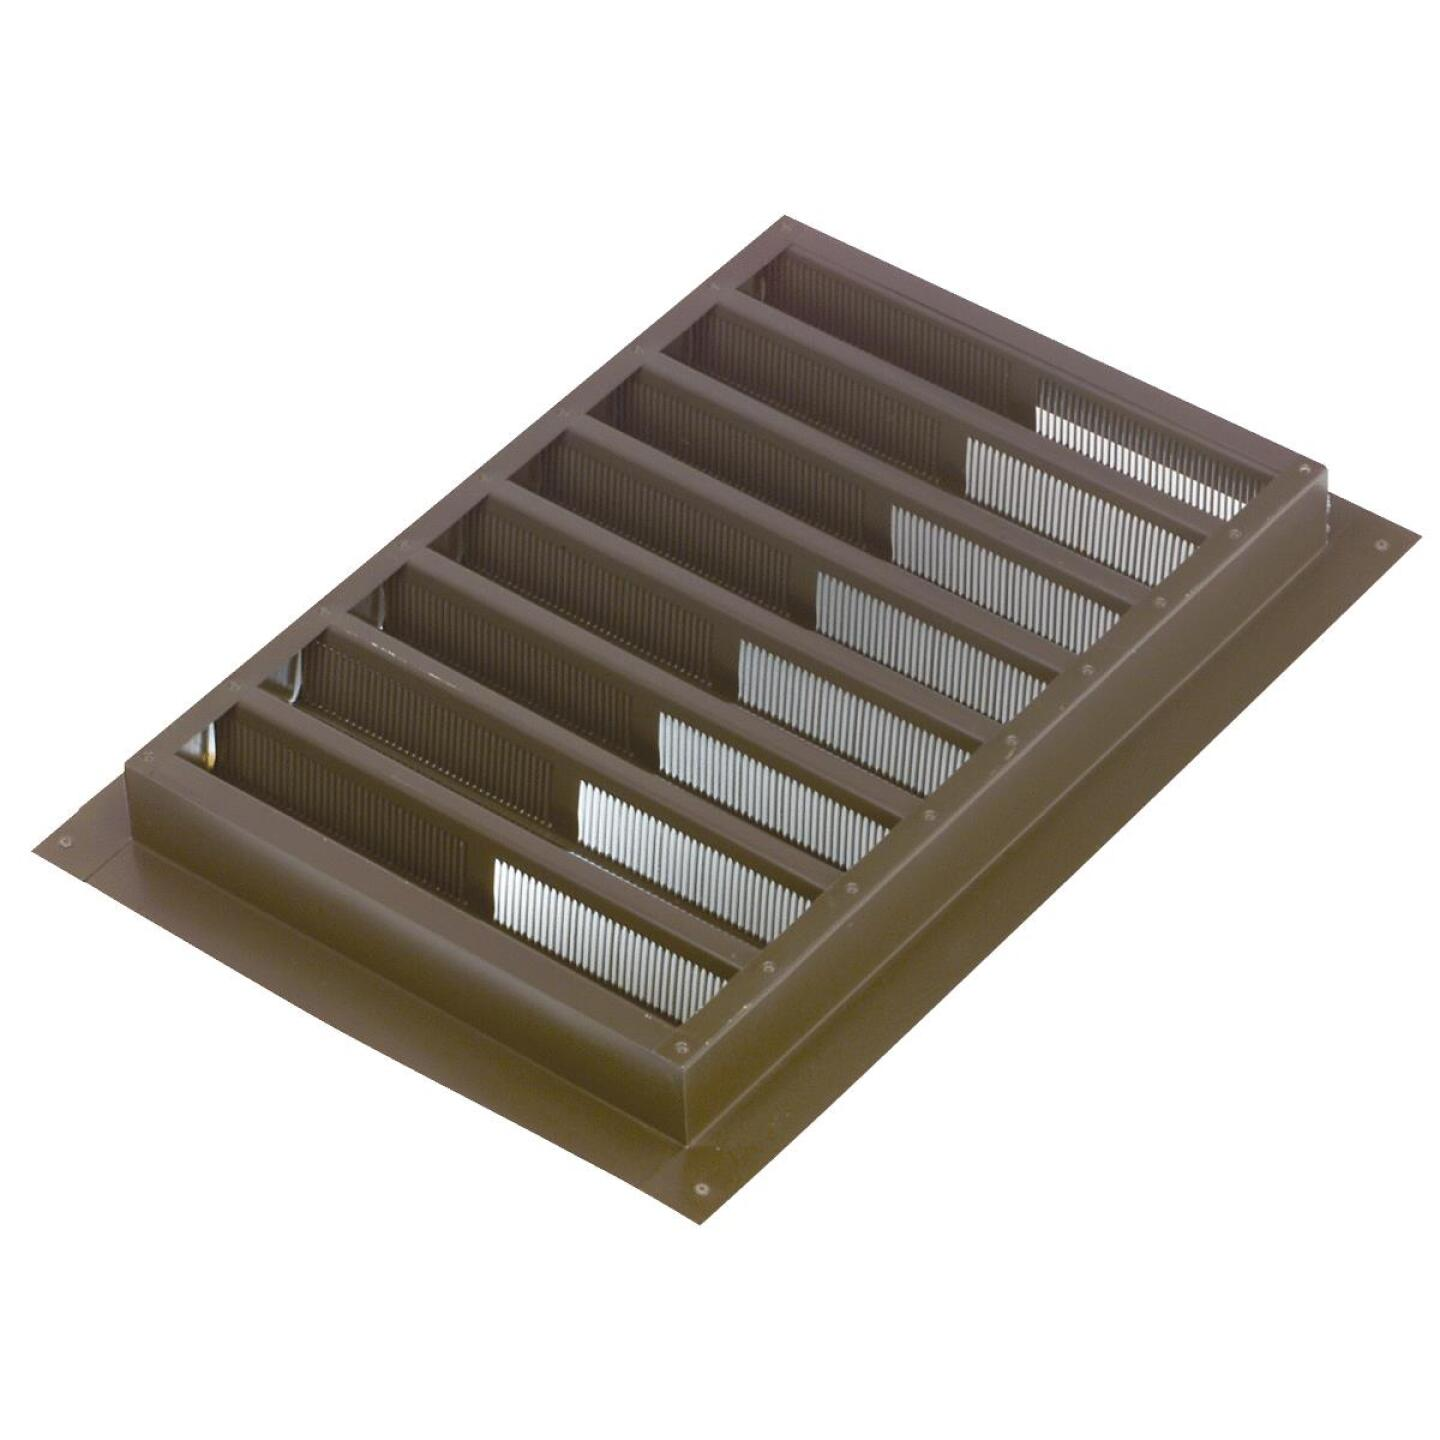 "NorWesco 12"" x 12"" Square Brown Gable Attic Vent Image 1"